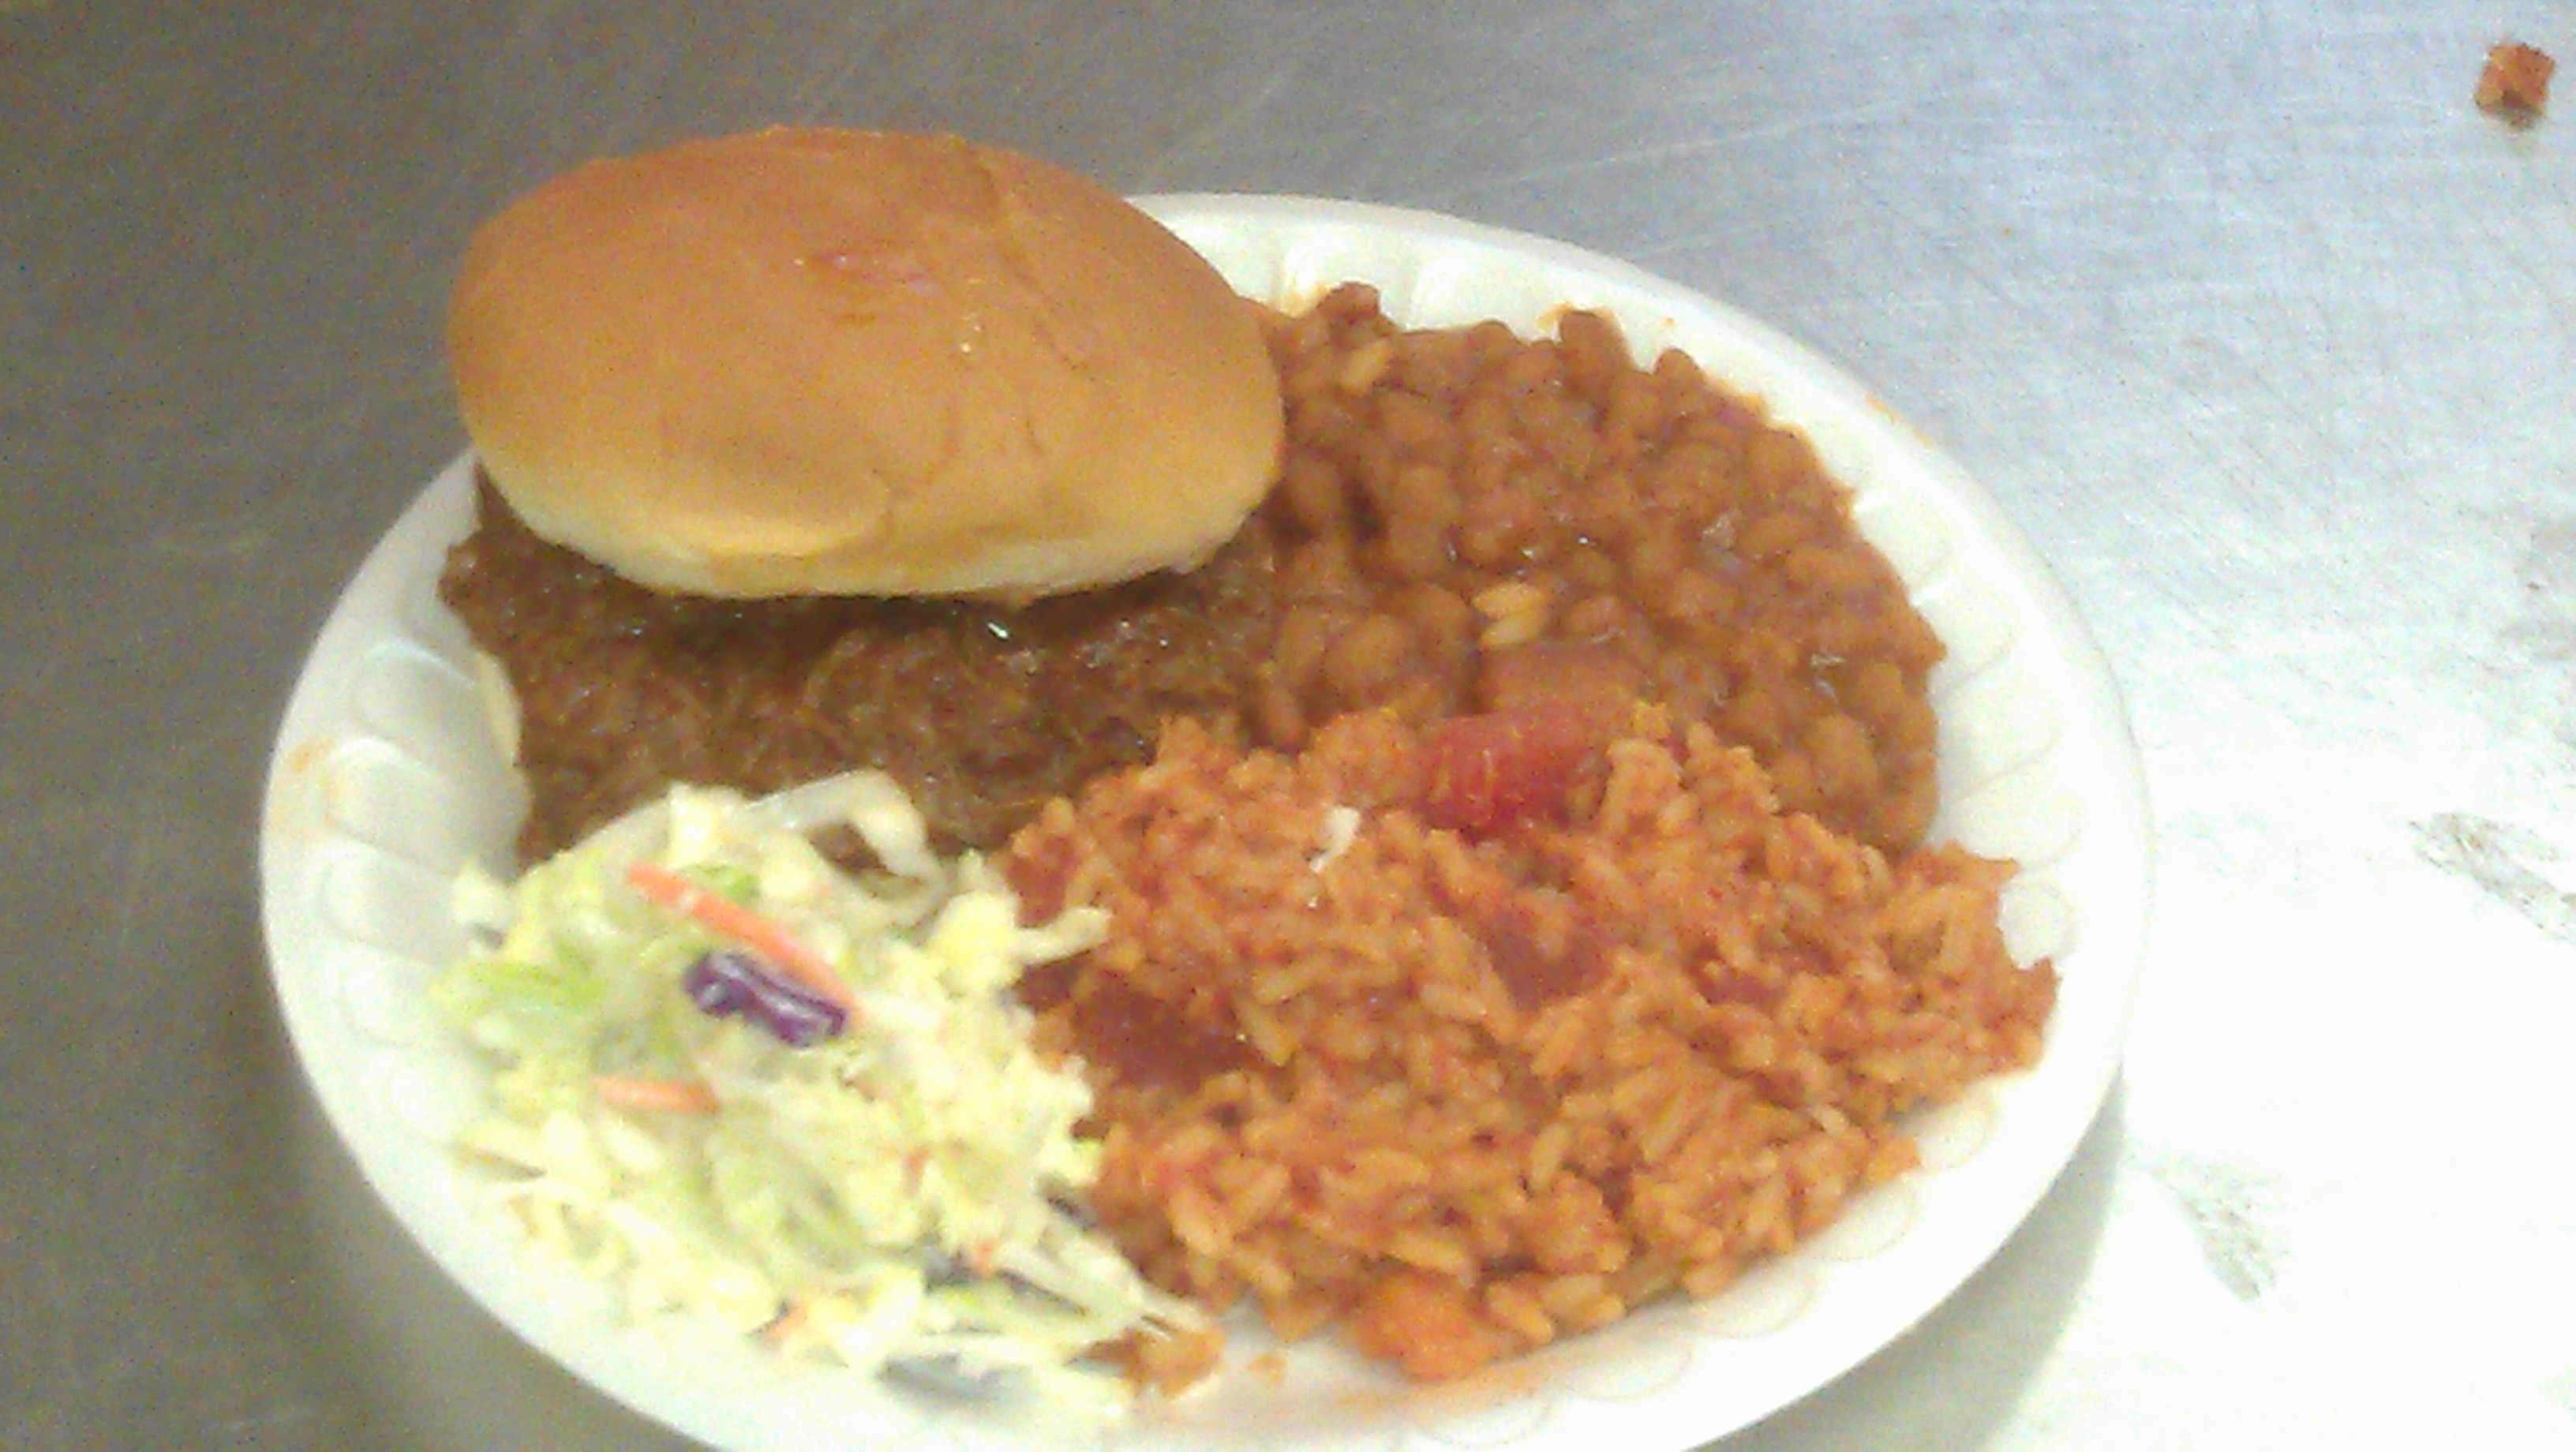 LOH 2013-05-14r Barbeque on a bun, baked beans, cole slaw